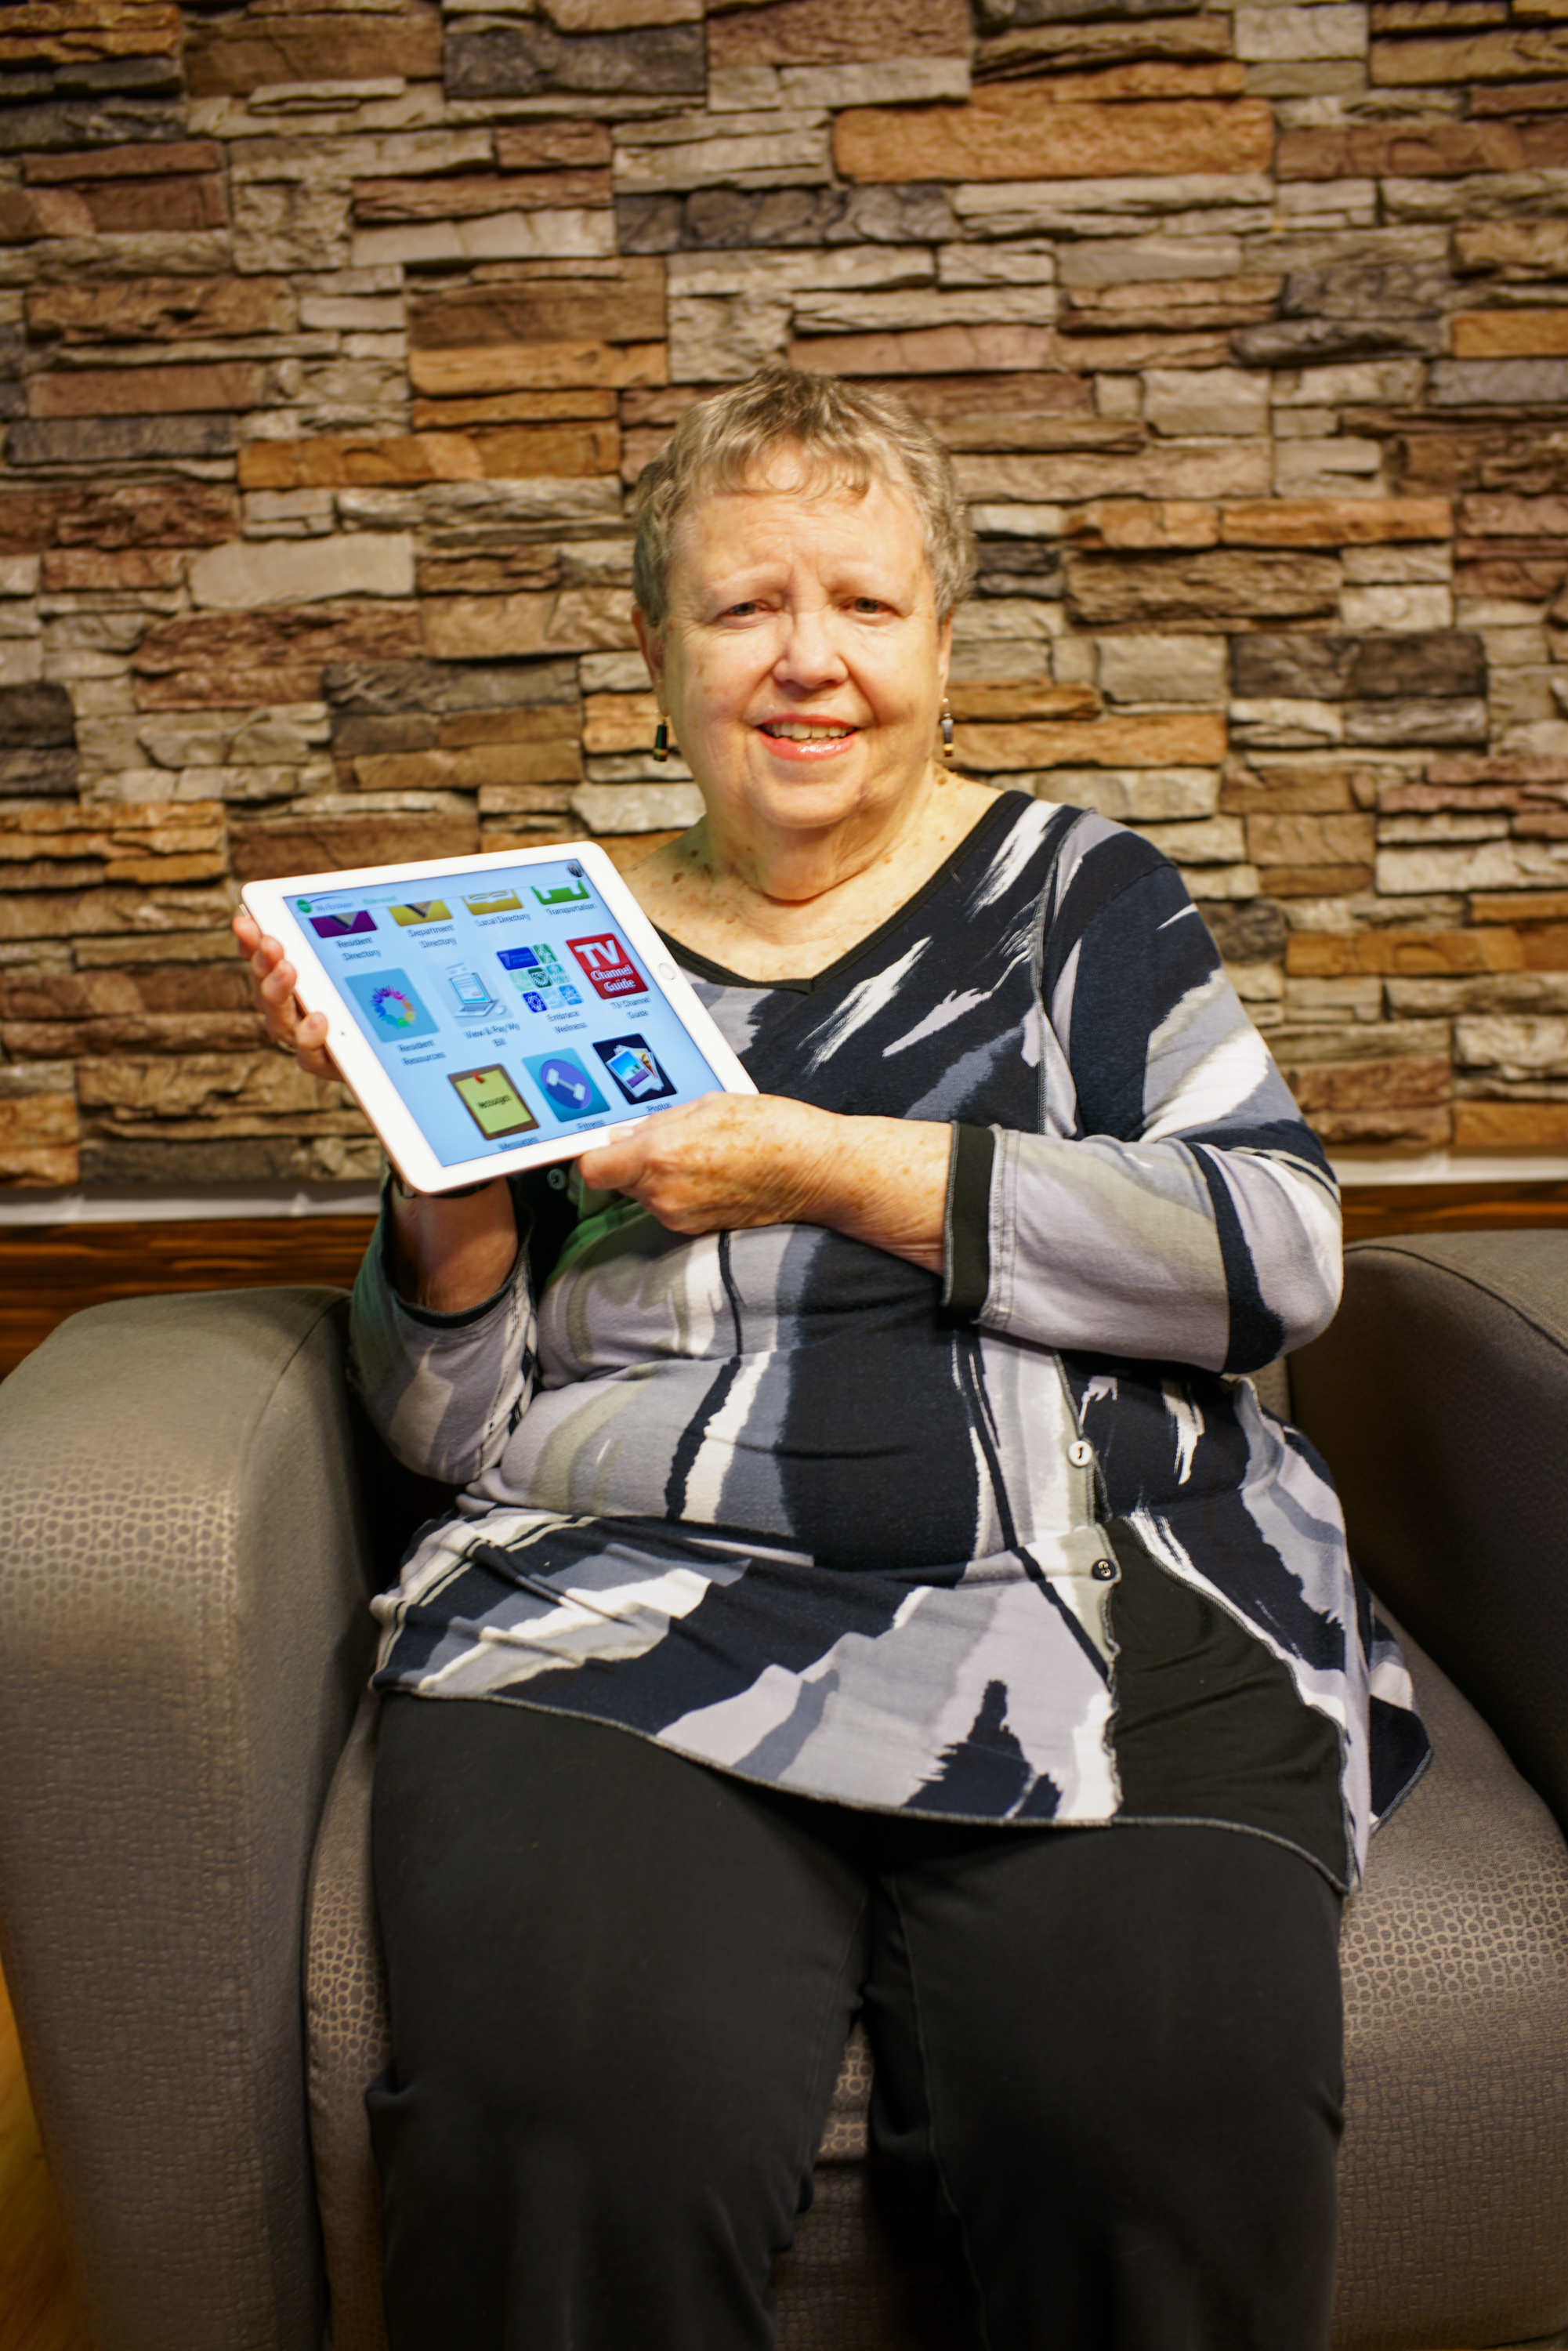 Trudy Downs, who spent the latter part of her career in the information technology field, is one of the many tech-savvy retirees living at Riderwood (Photo Courtney Coombs)